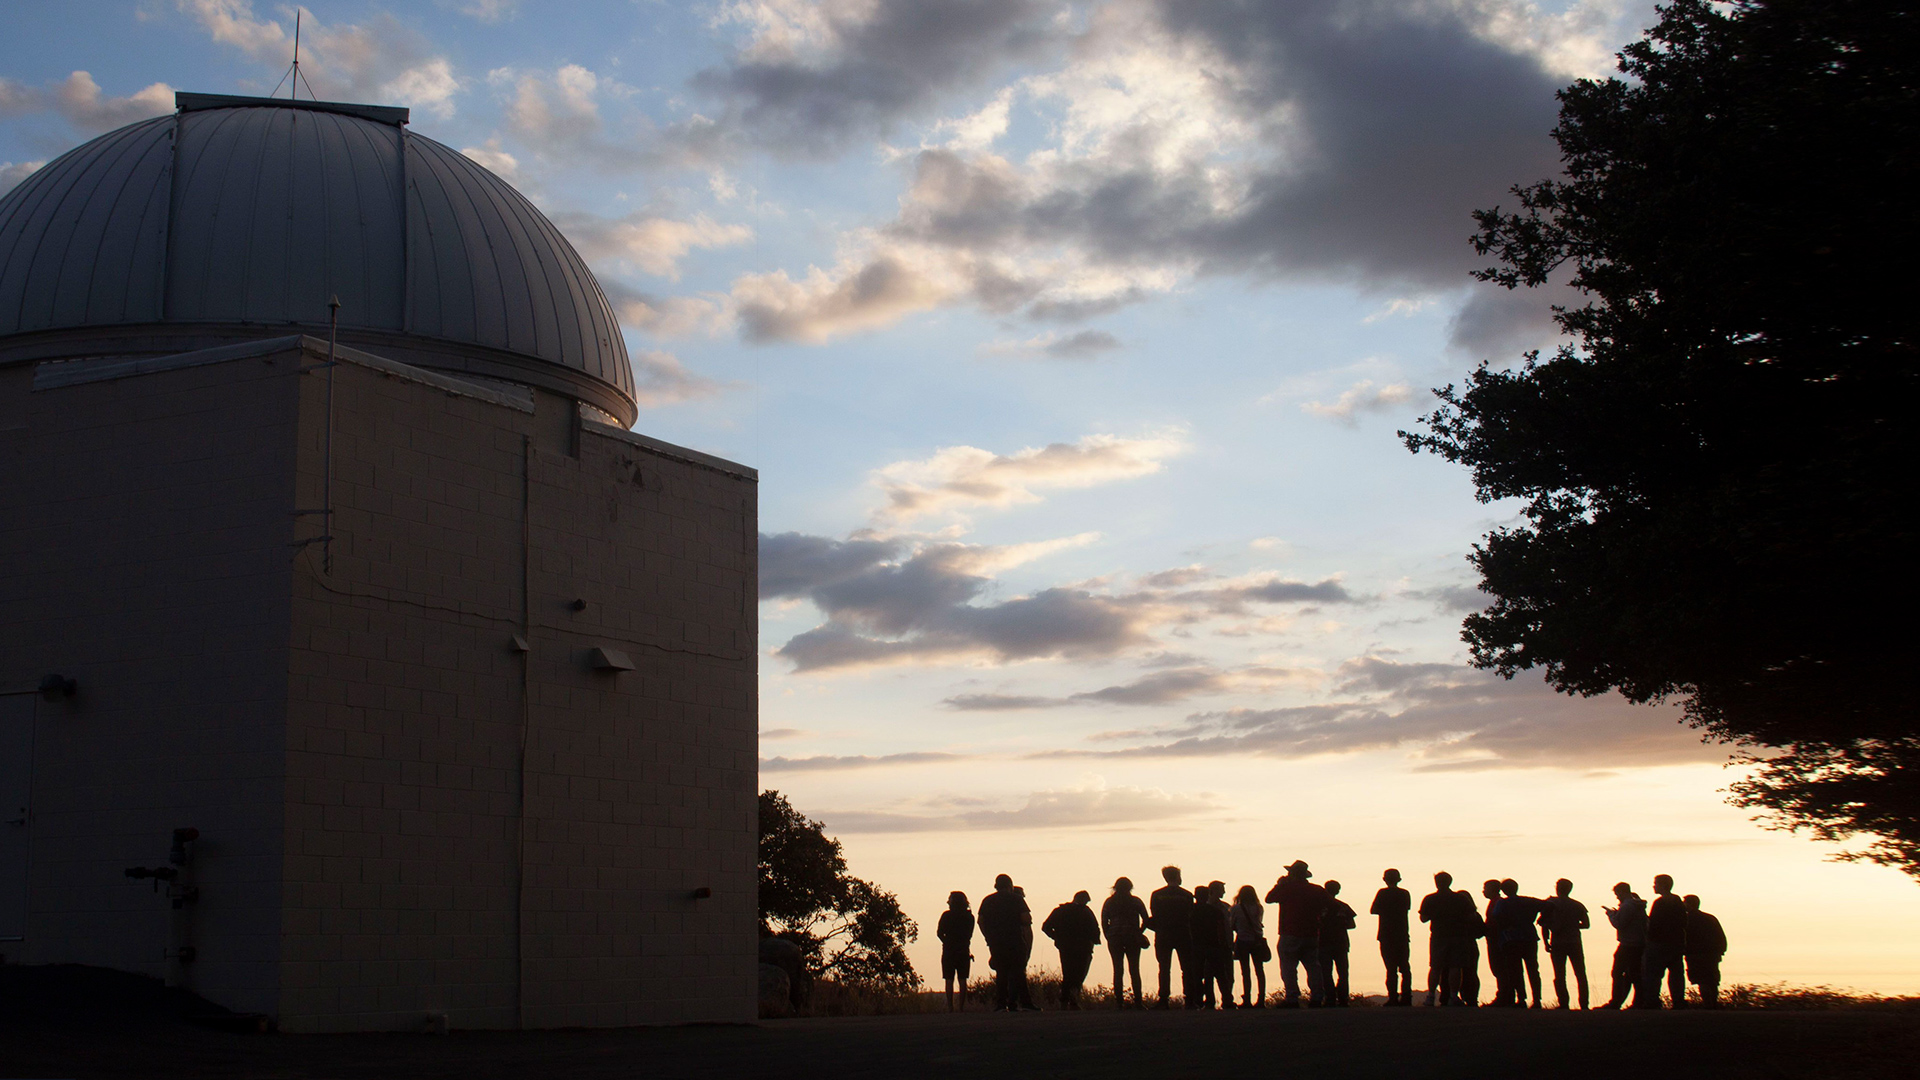 At sunset on top of Mt. Laguna Observatory, the silhouettes of 20 people standing next to a telescope dome structure outside.